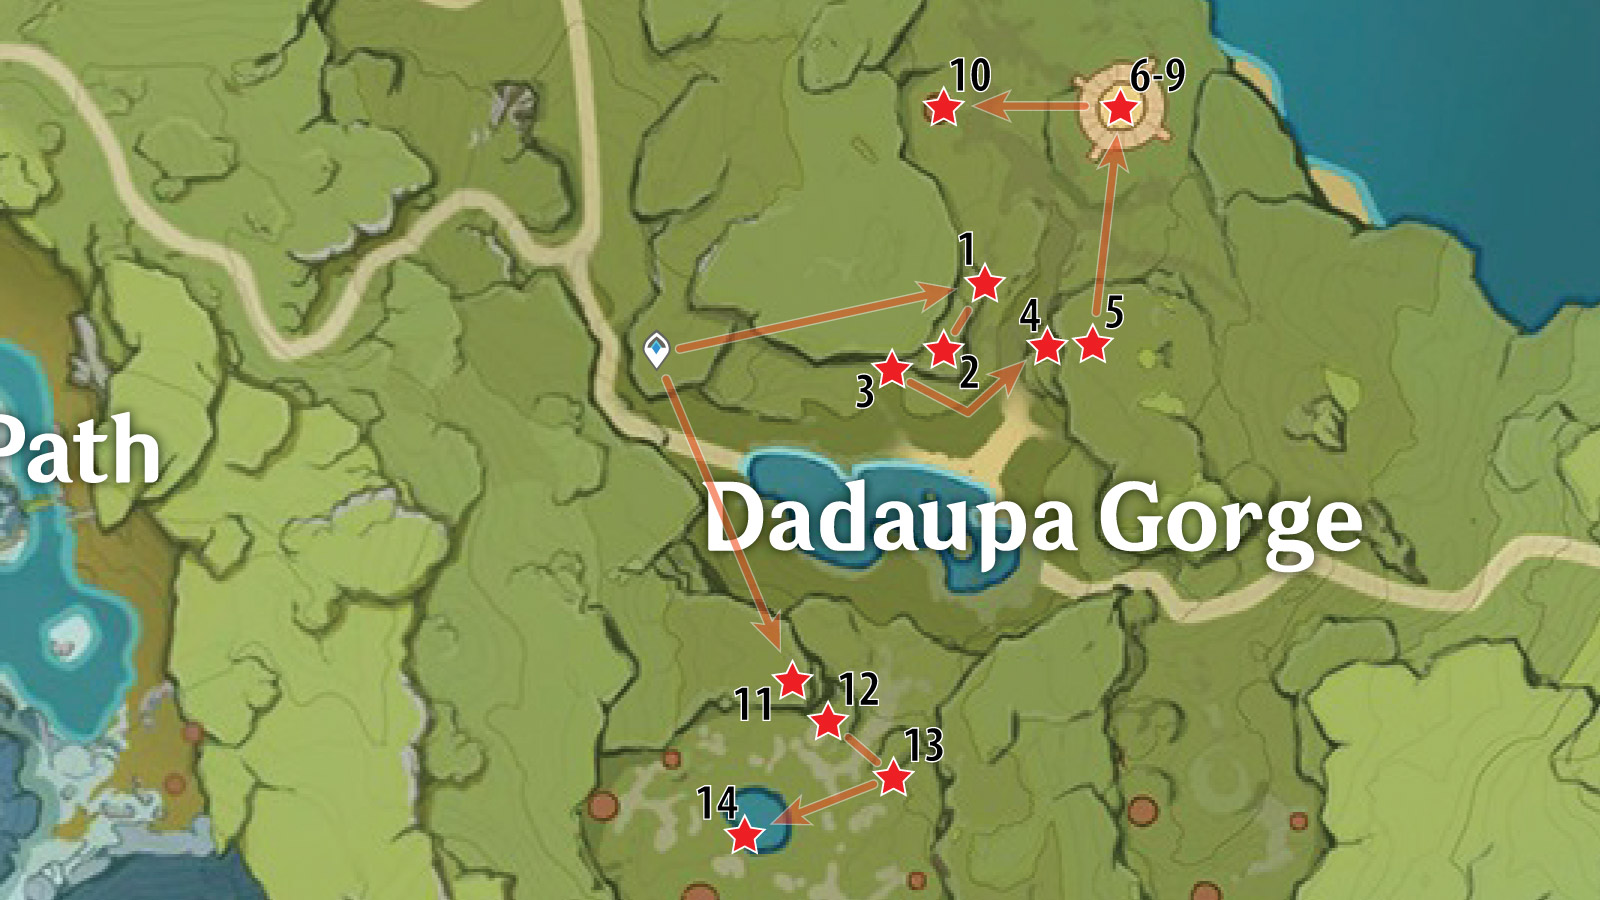 Dadaupa Gorge Chest Locations